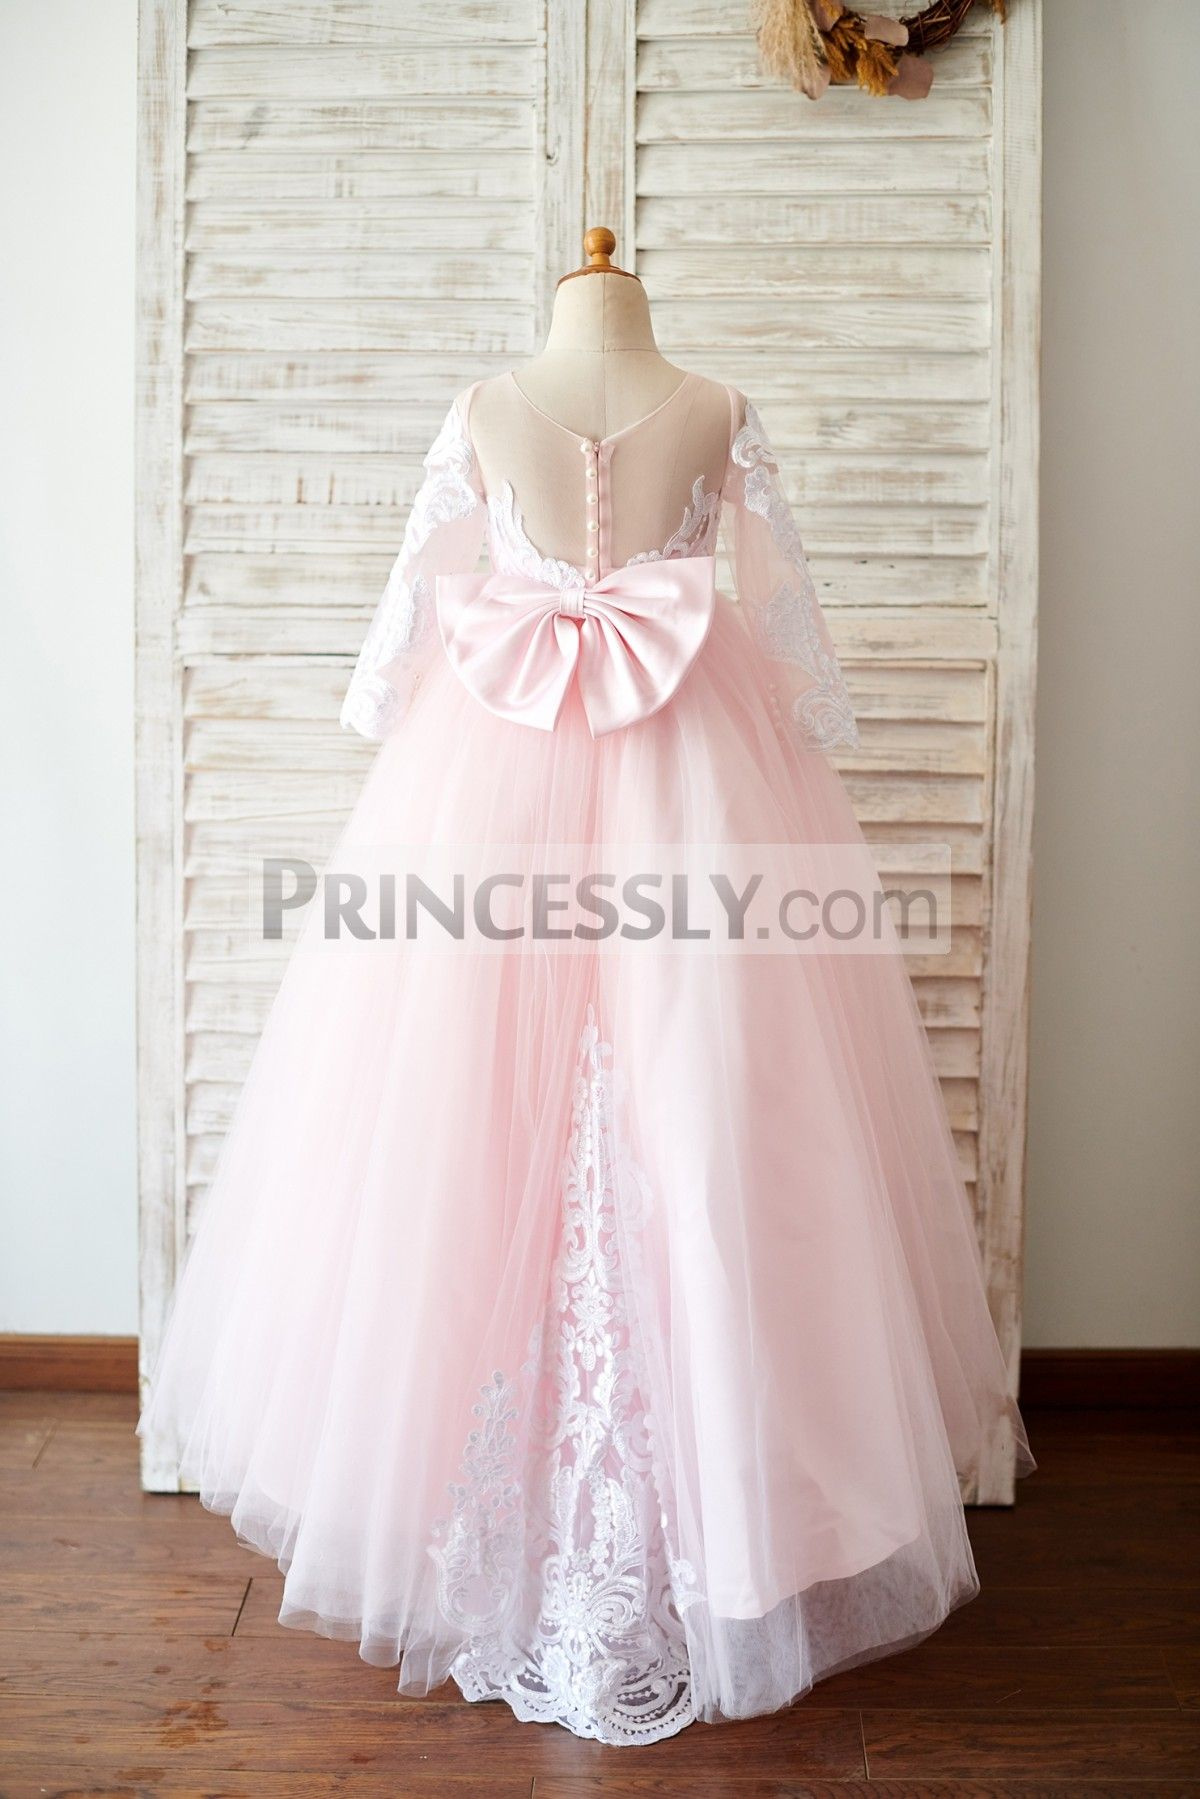 Ball gown long sleeves pink lace tulle wedding flower girl dress